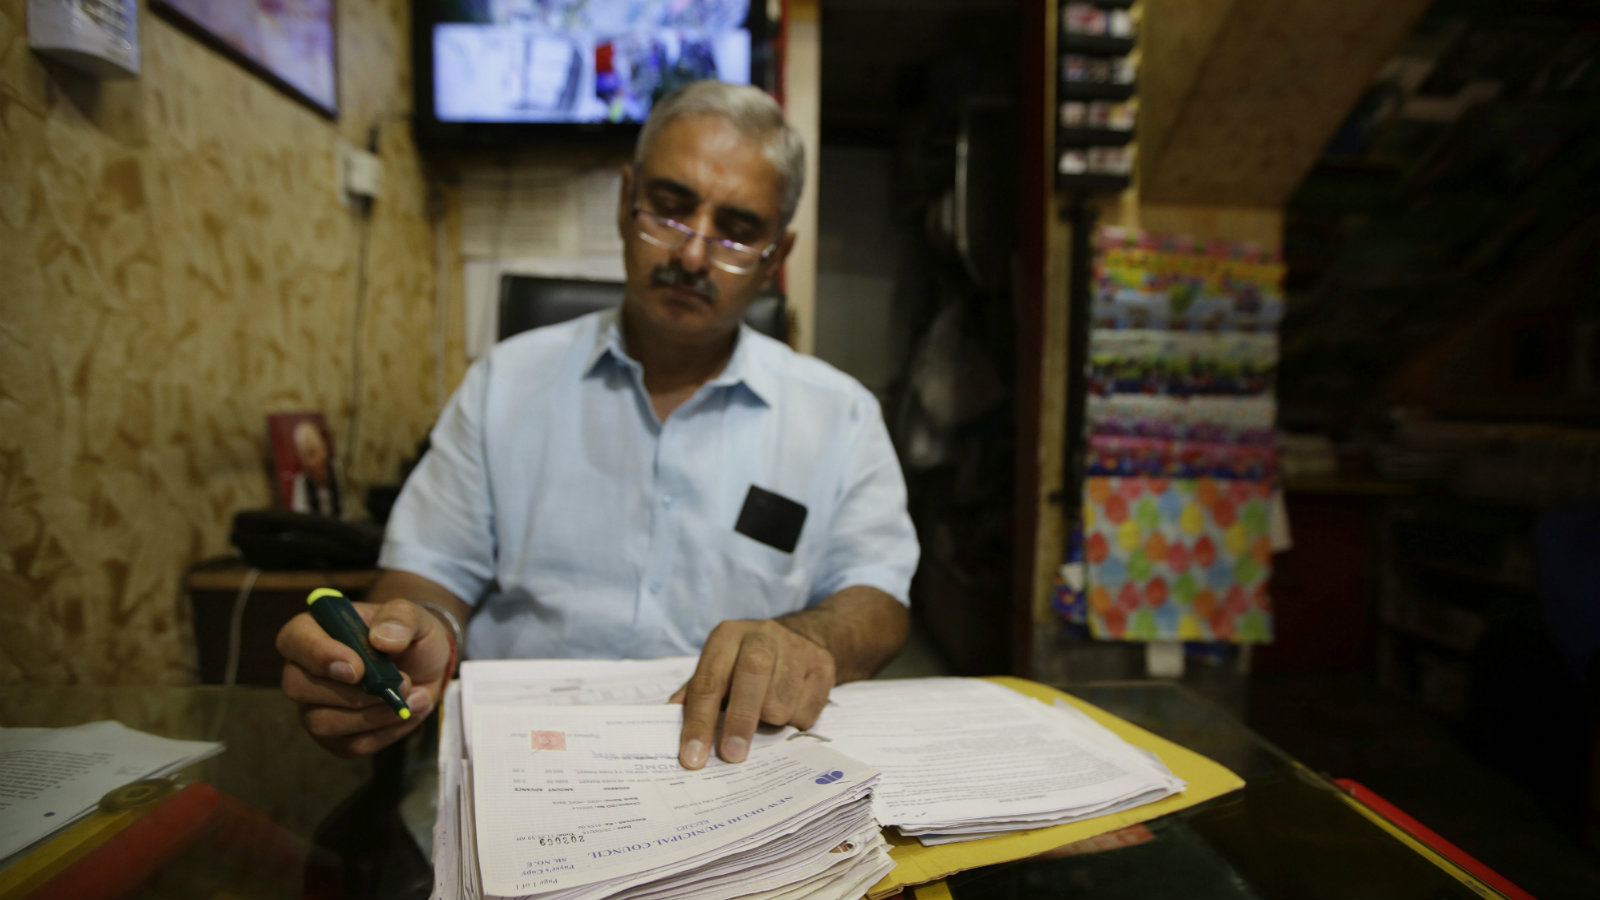 In this June 15, 2017 photo, Sanjiv Mehra, a toy shop owner checks his ledger at his shop in Khan Market, New Delhi, India. Indian businesses are in a tizzy trying to comply with a long-awaited reform in the country's sales regime. The government says the Goods and Services Tax going into effect July 1 will boost the economy by streamlining business within a single market. Traders and business owners are still trying to figure out how it will work